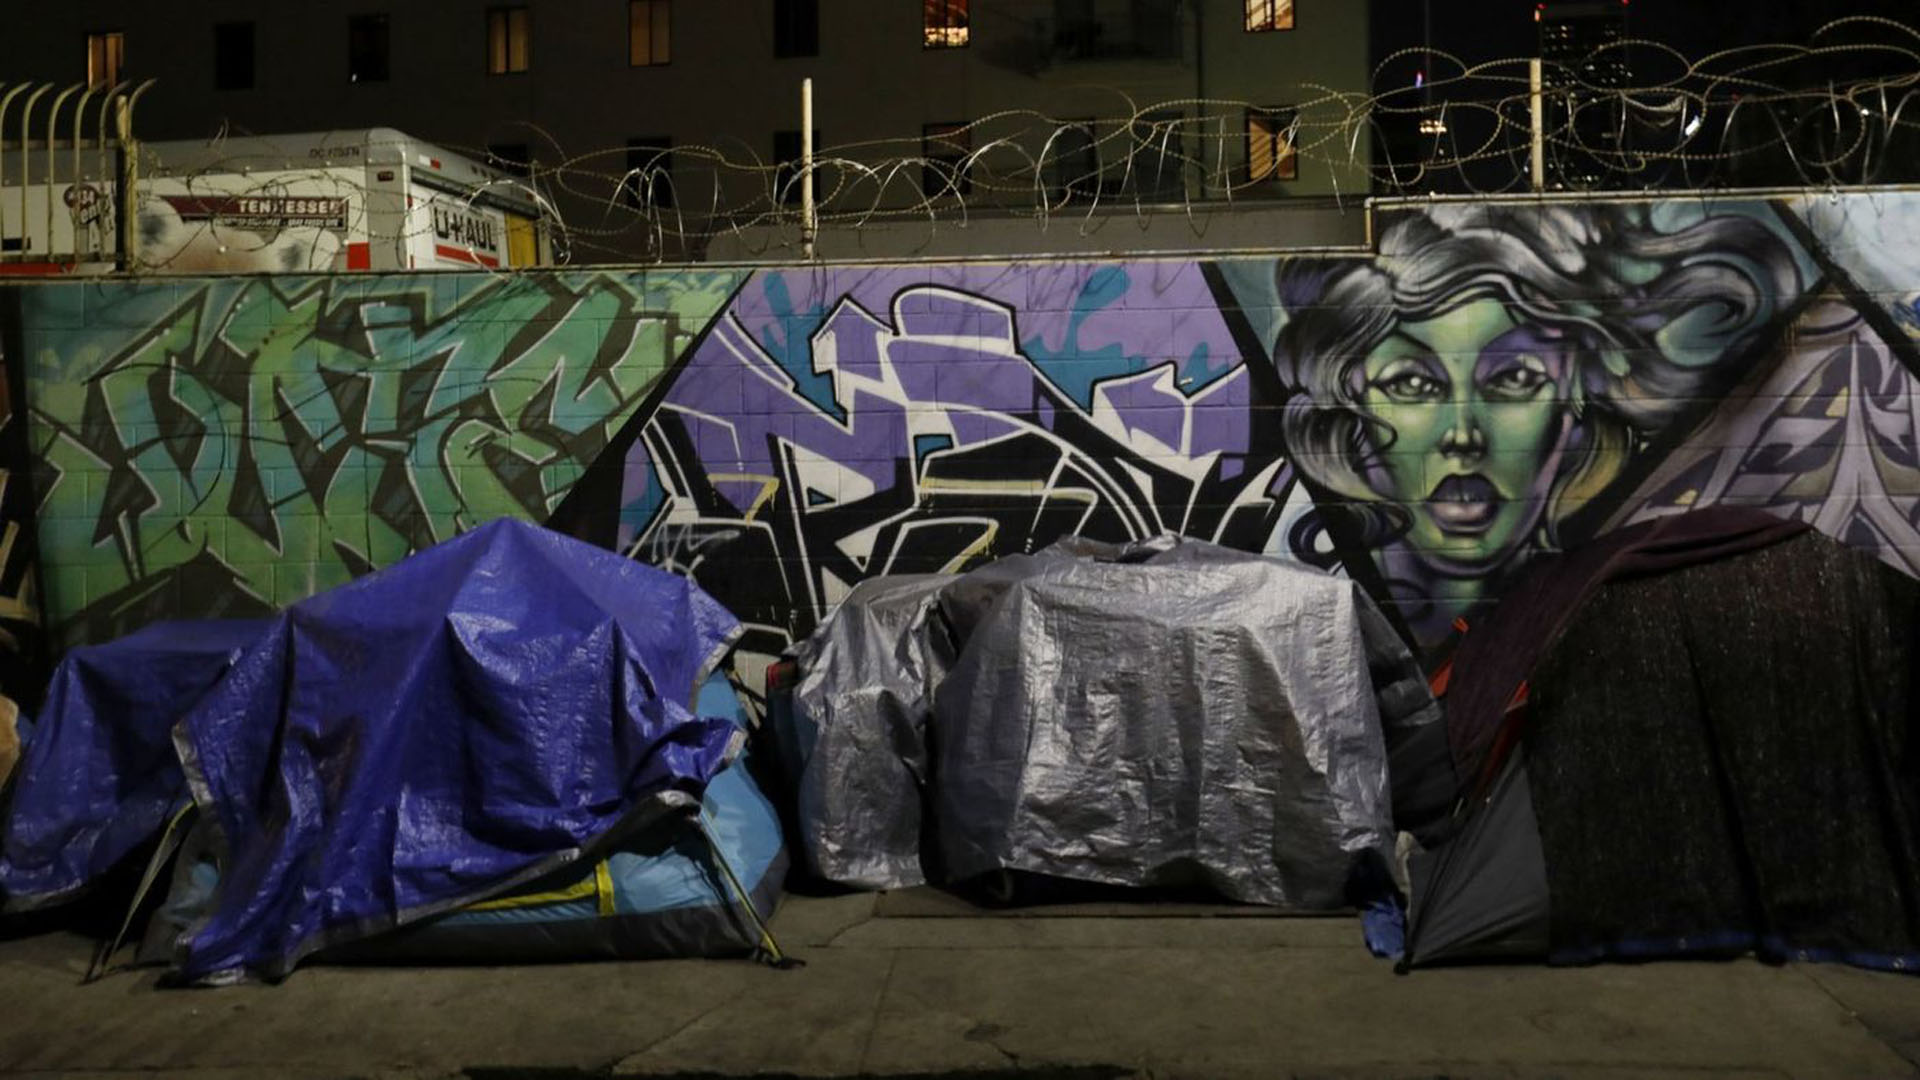 In this file photo, tents line San Julian Street on skid row. (Credit: Francine Orr / Los Angeles Times)